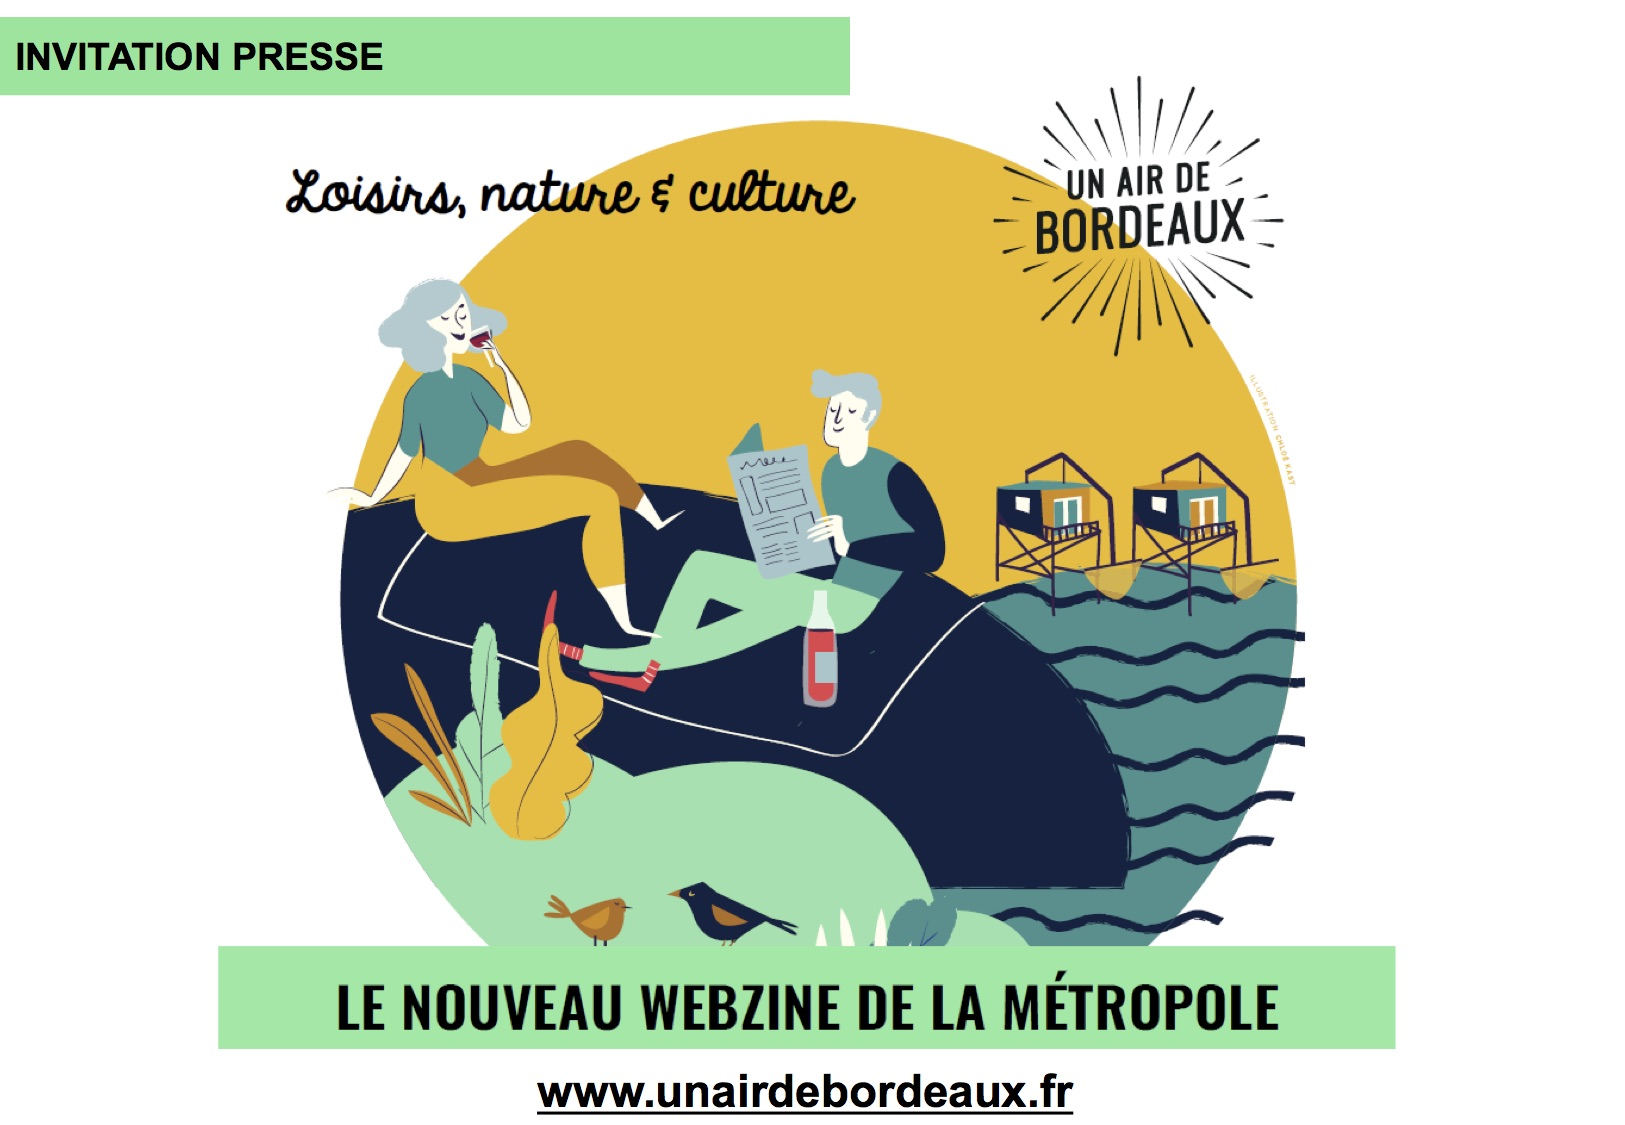 nvitation presse : lancement webzine 'Un Air de Bordeaux'